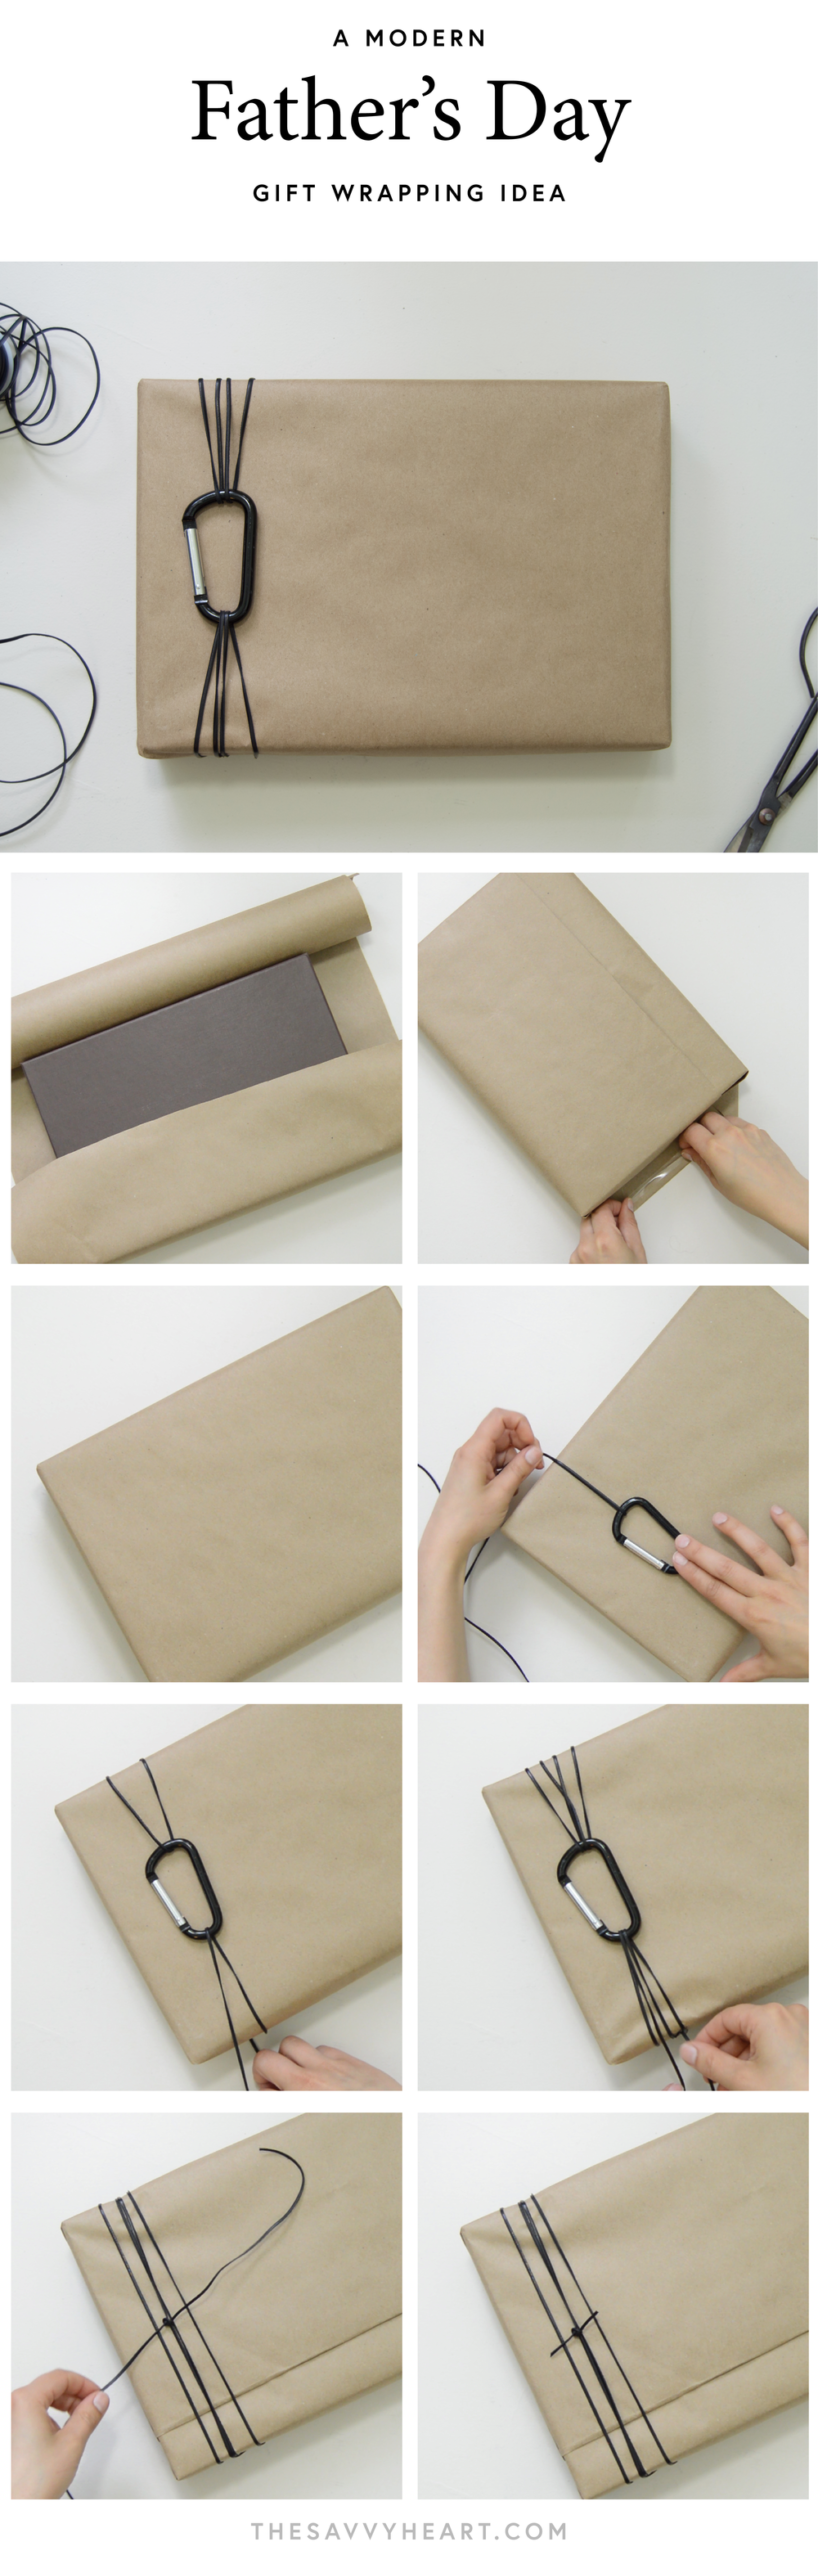 How To: A Simple and Modern Father's Day Gift Wrapping Idea